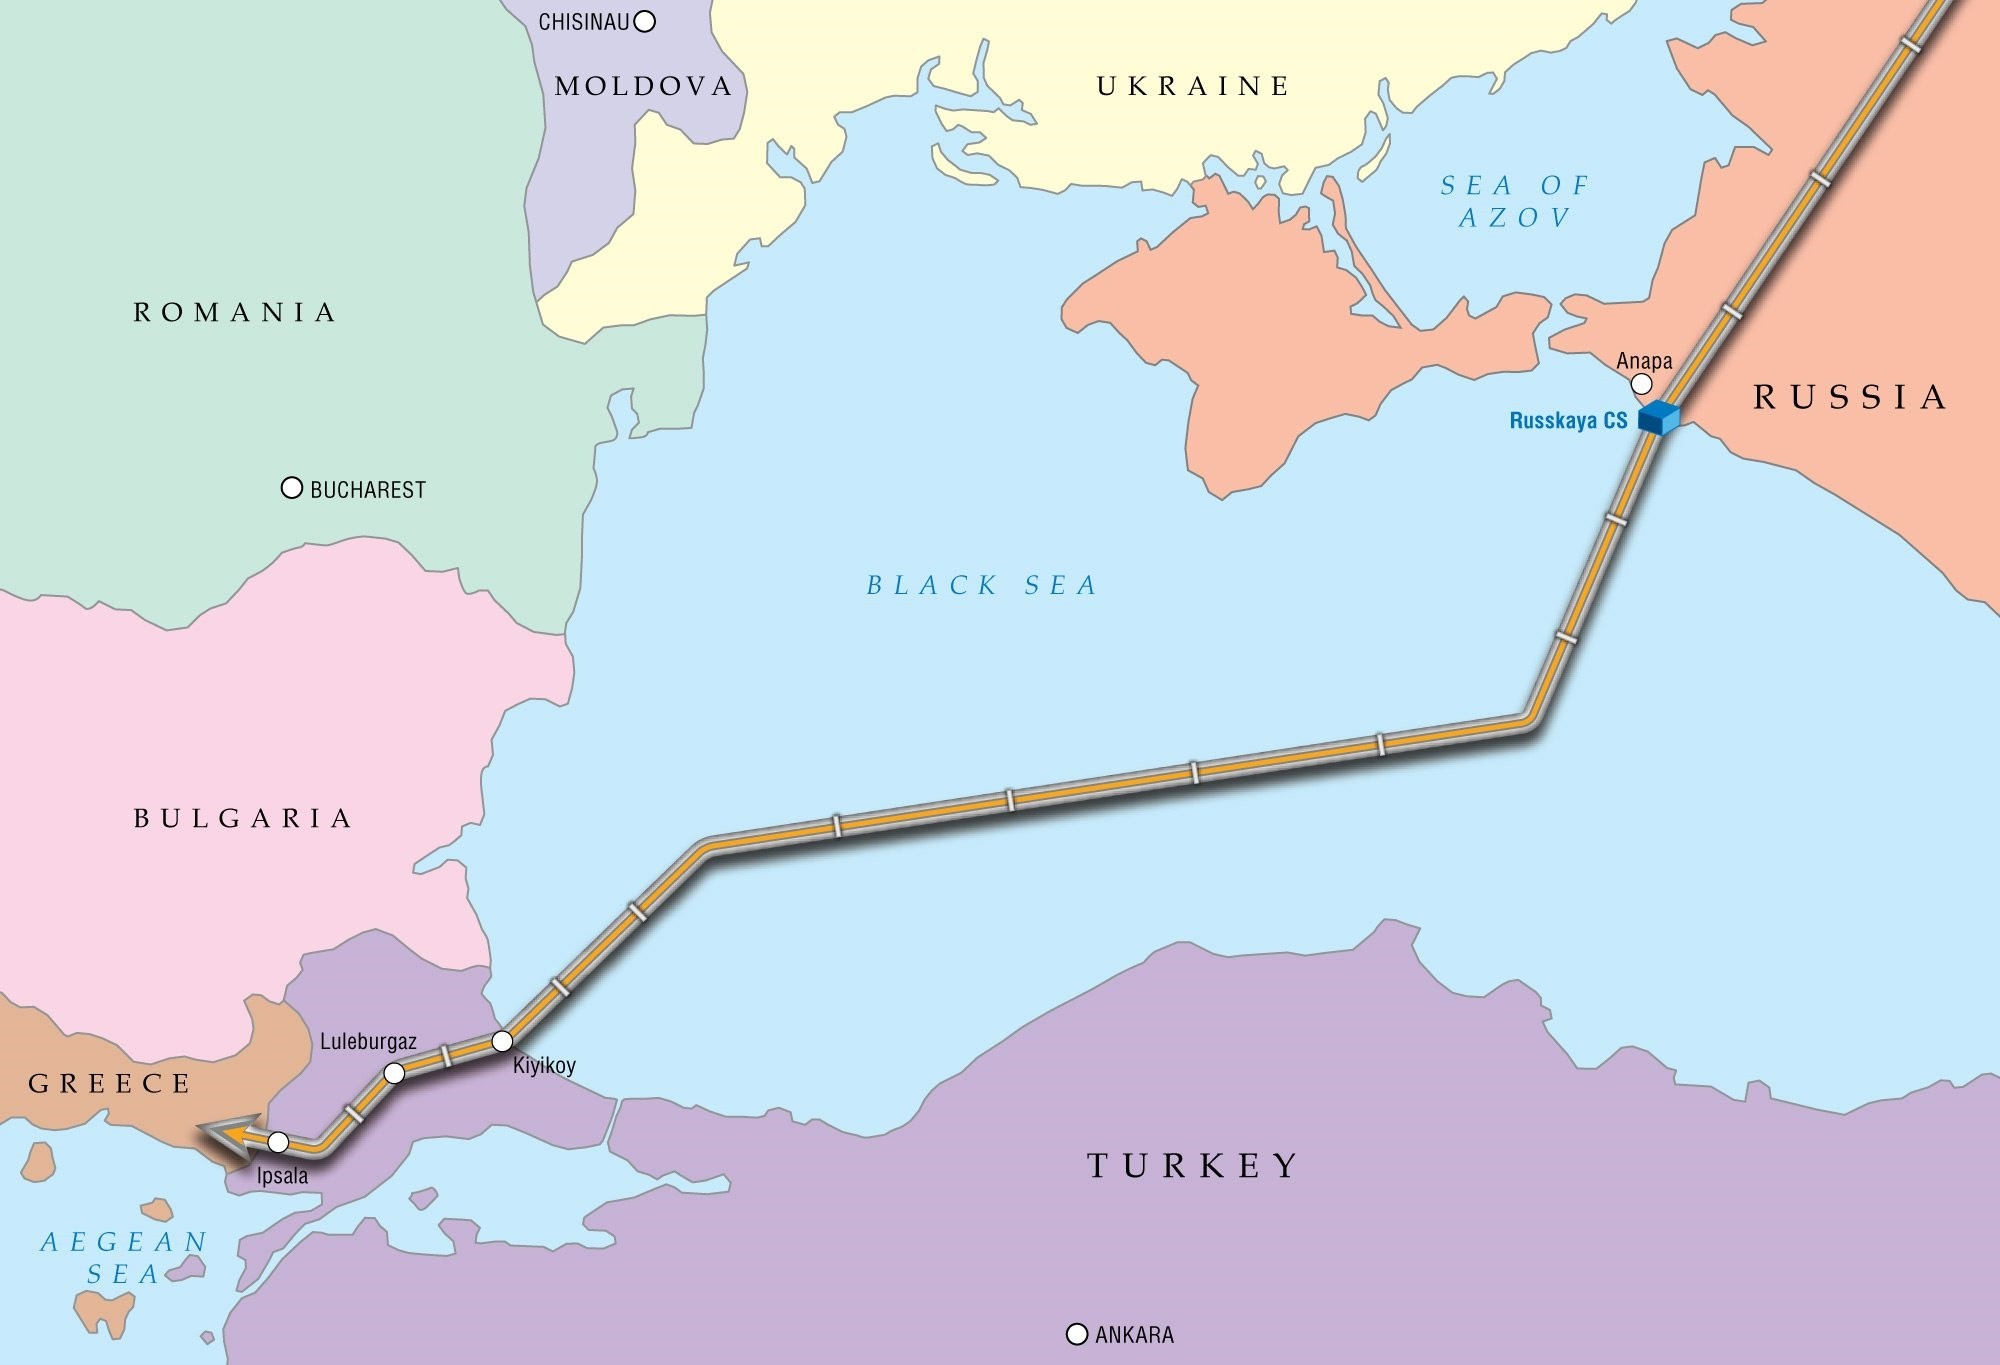 The Turkstream project will carry Russian natural gas to europe. The offshore part of the pipeline will cross the black sea bed and run 910 km.